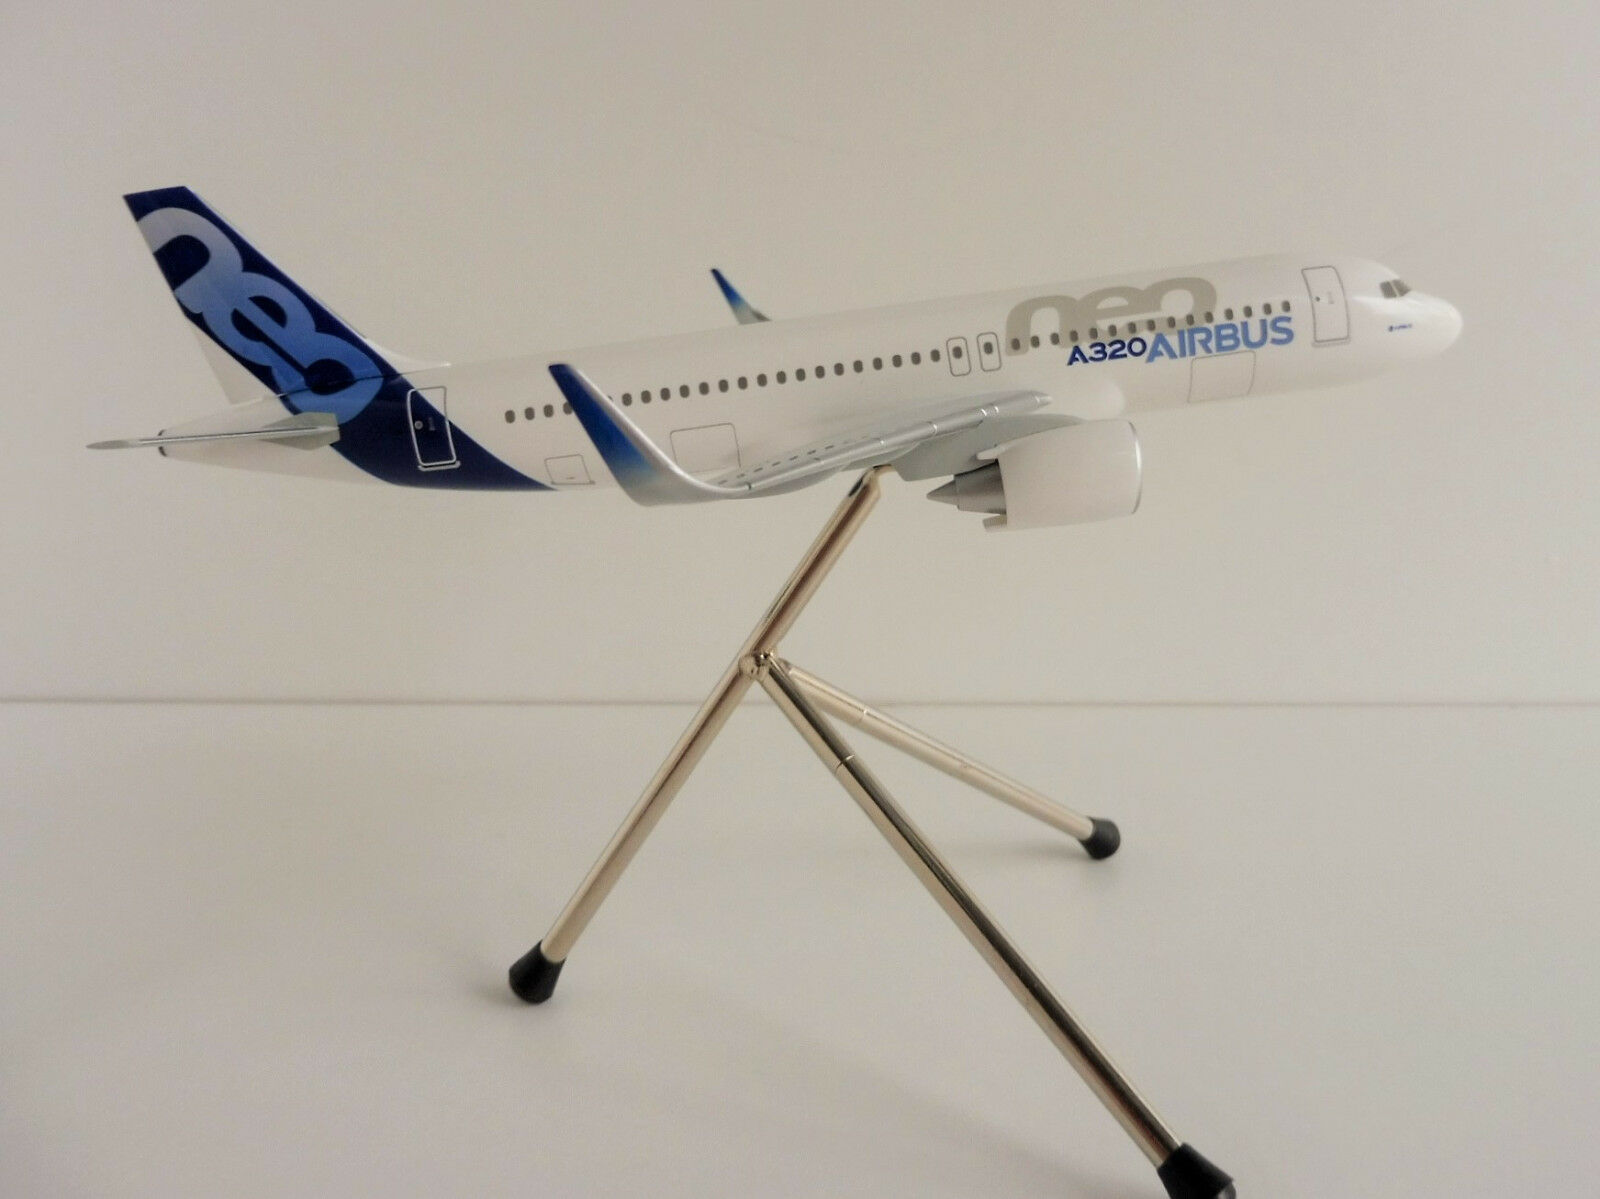 Airbus a320neo House Colour 1 200 Hogan LIMOX Wings as13 A 320 a320 Neo New reçues qui spéci